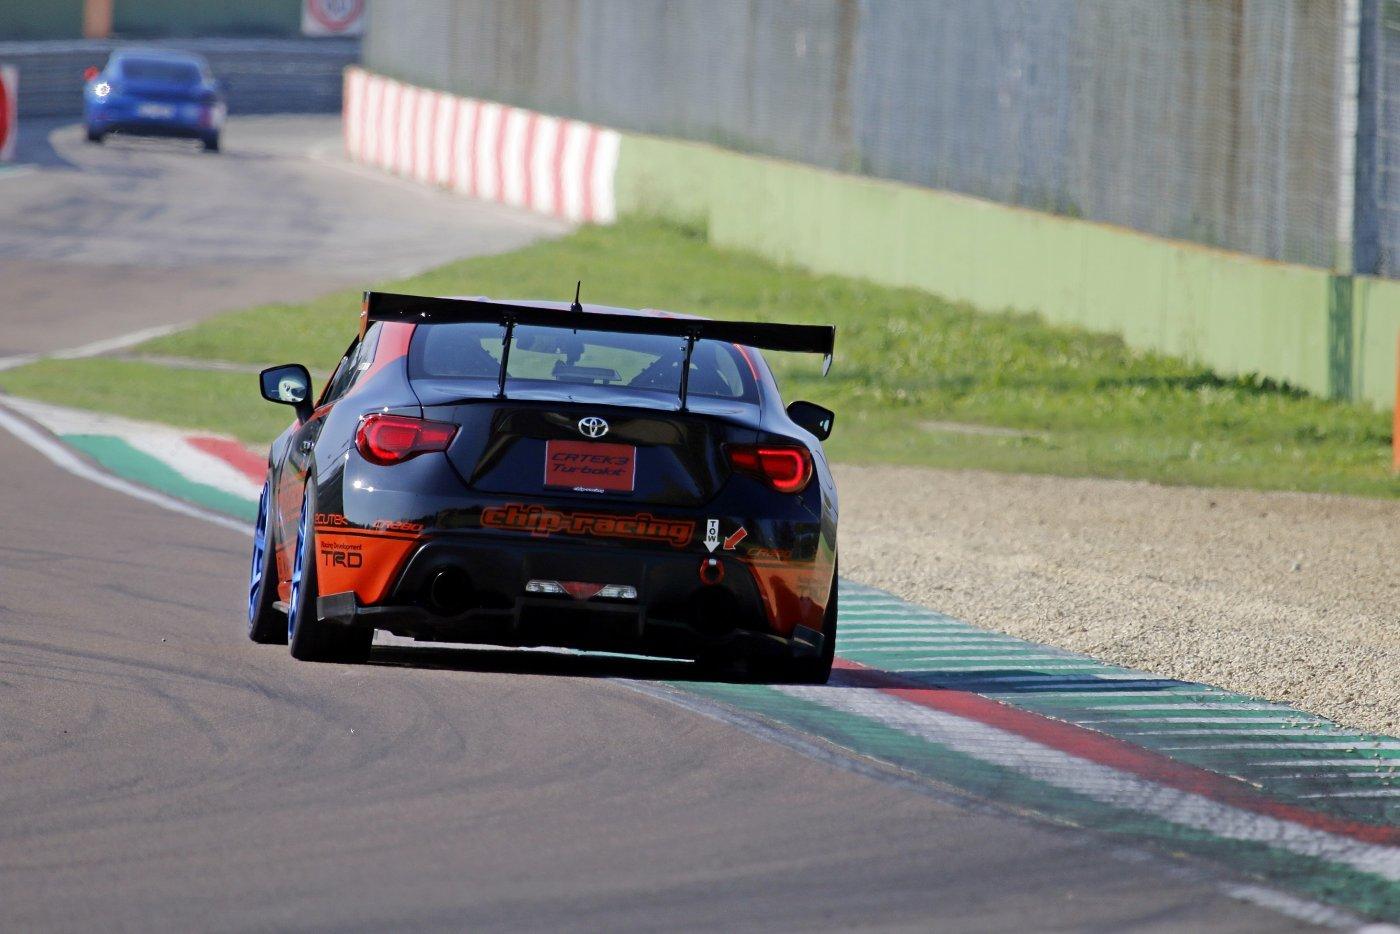 Time Attack Imola 2019 Chip-Racing GT86 Turbo